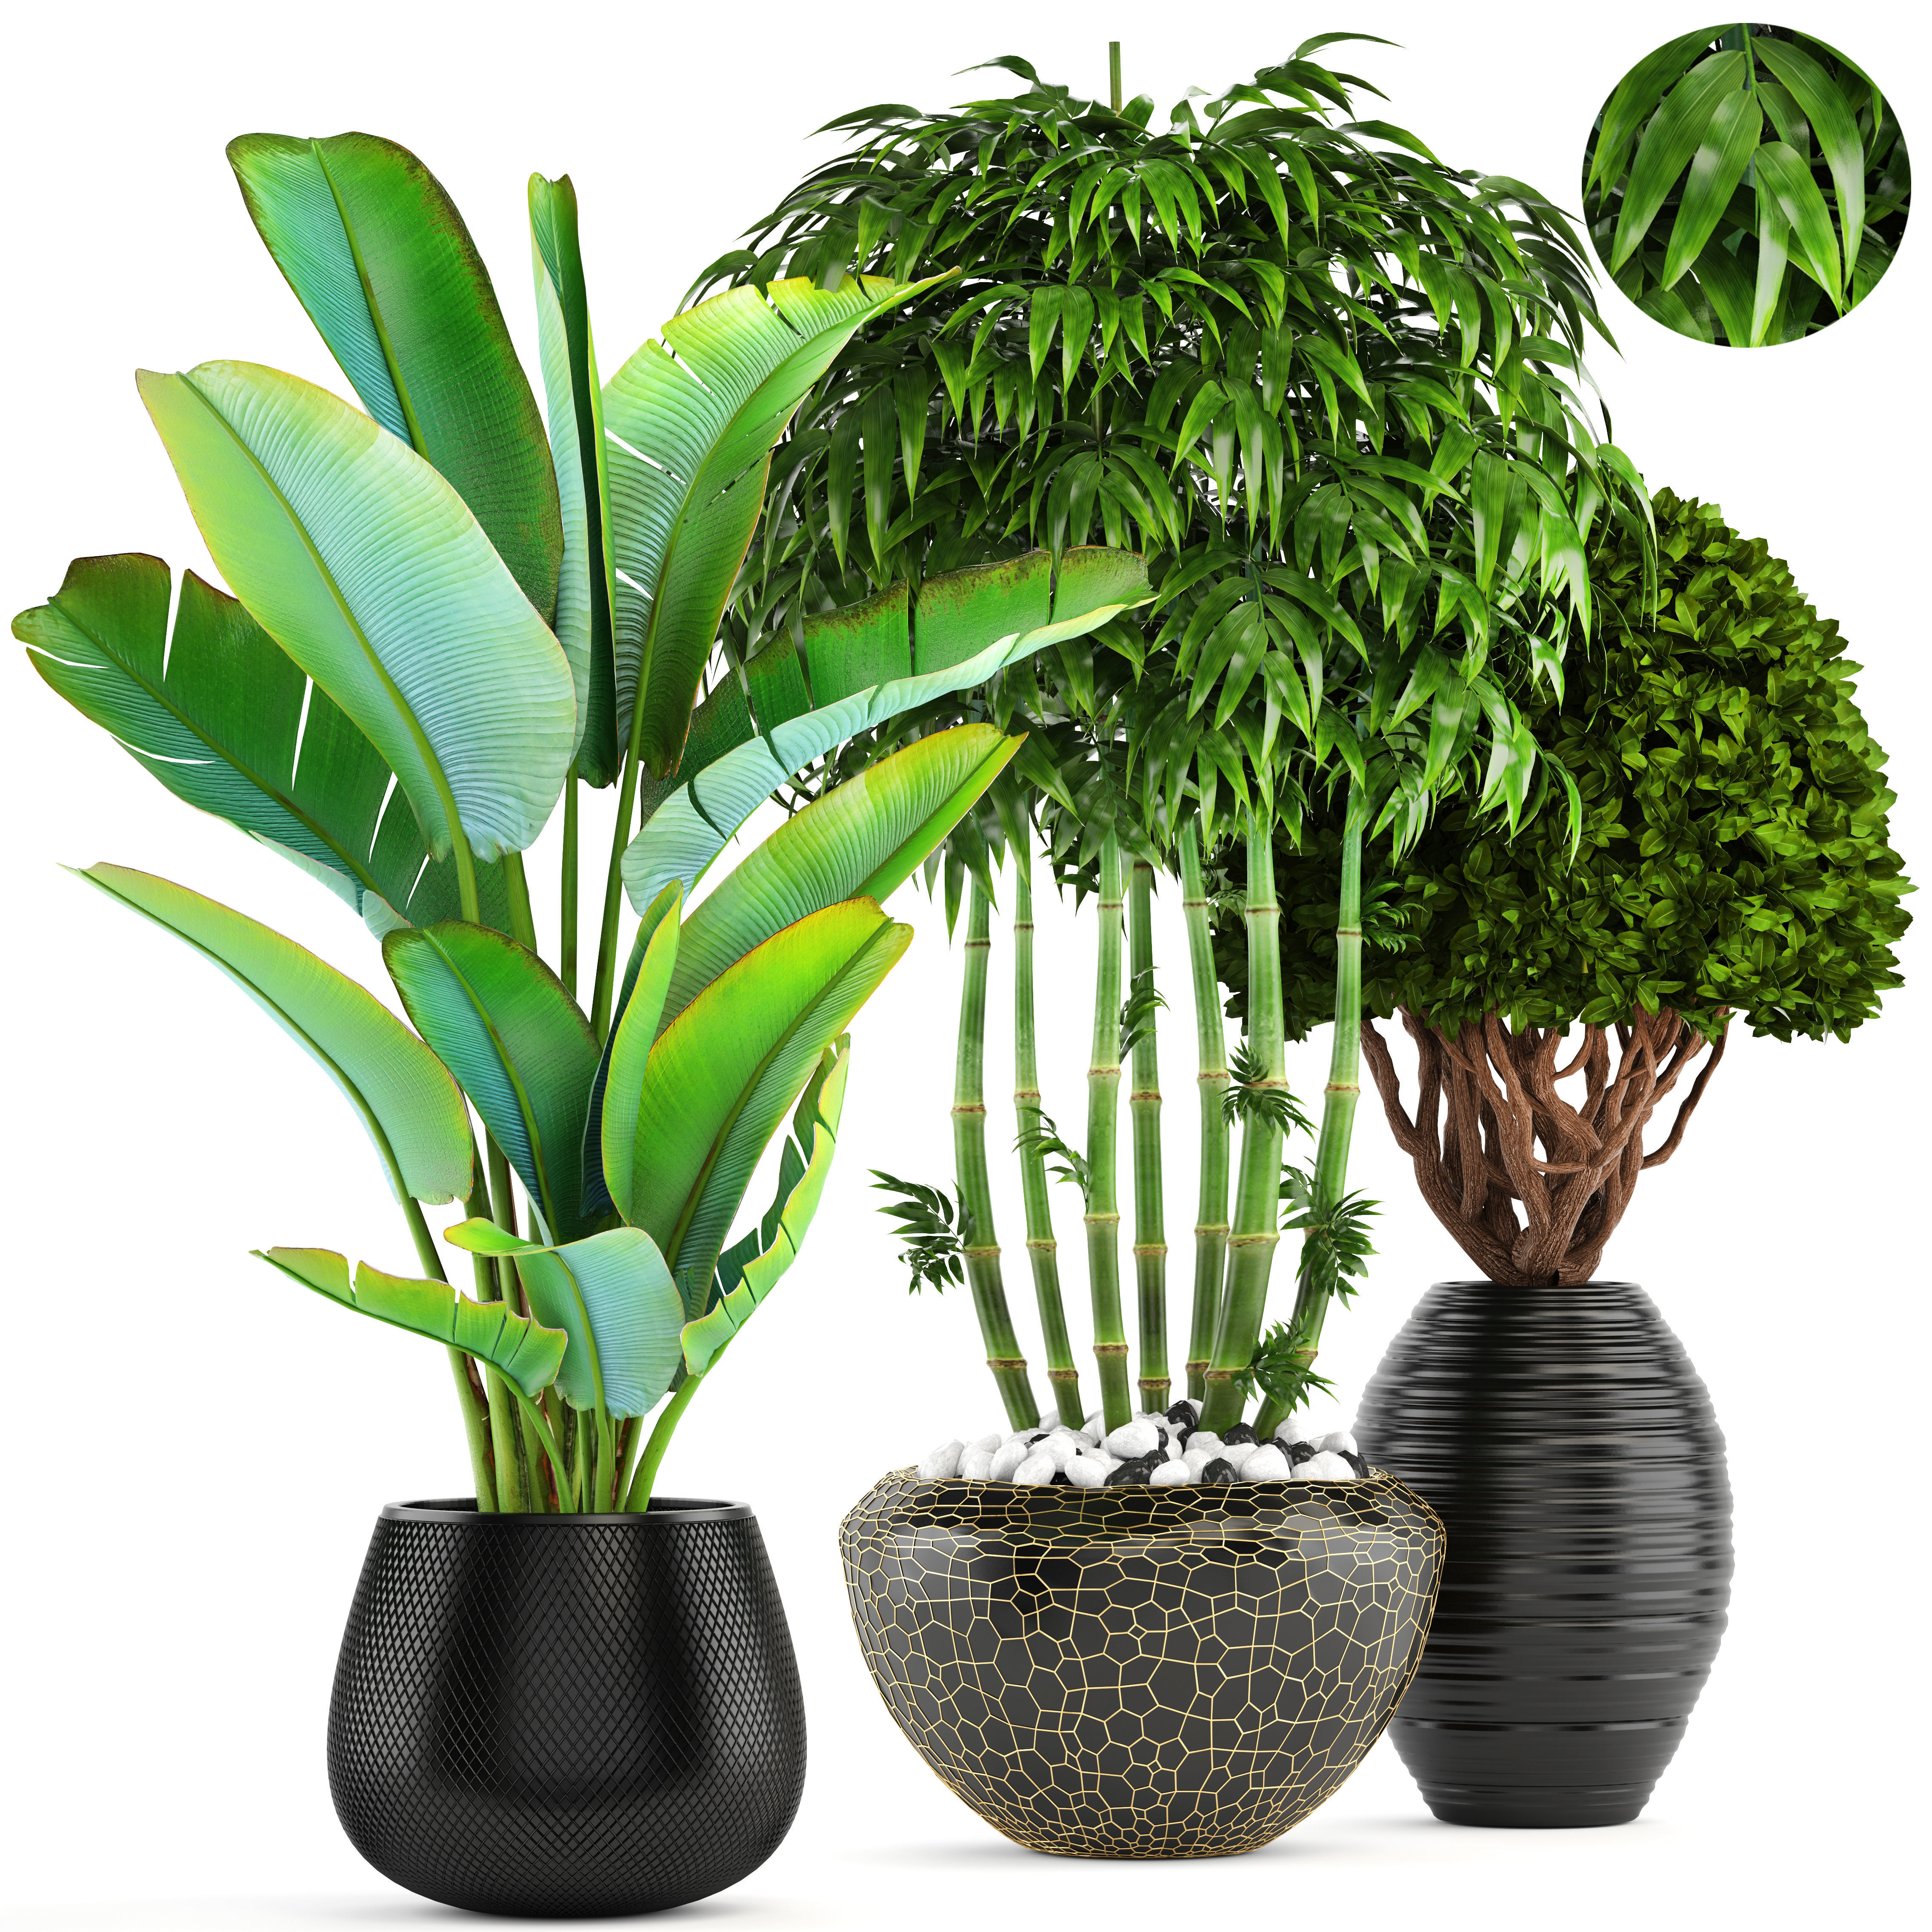 Bush 3d Model Collection Of Tropical Plants Cgtrader